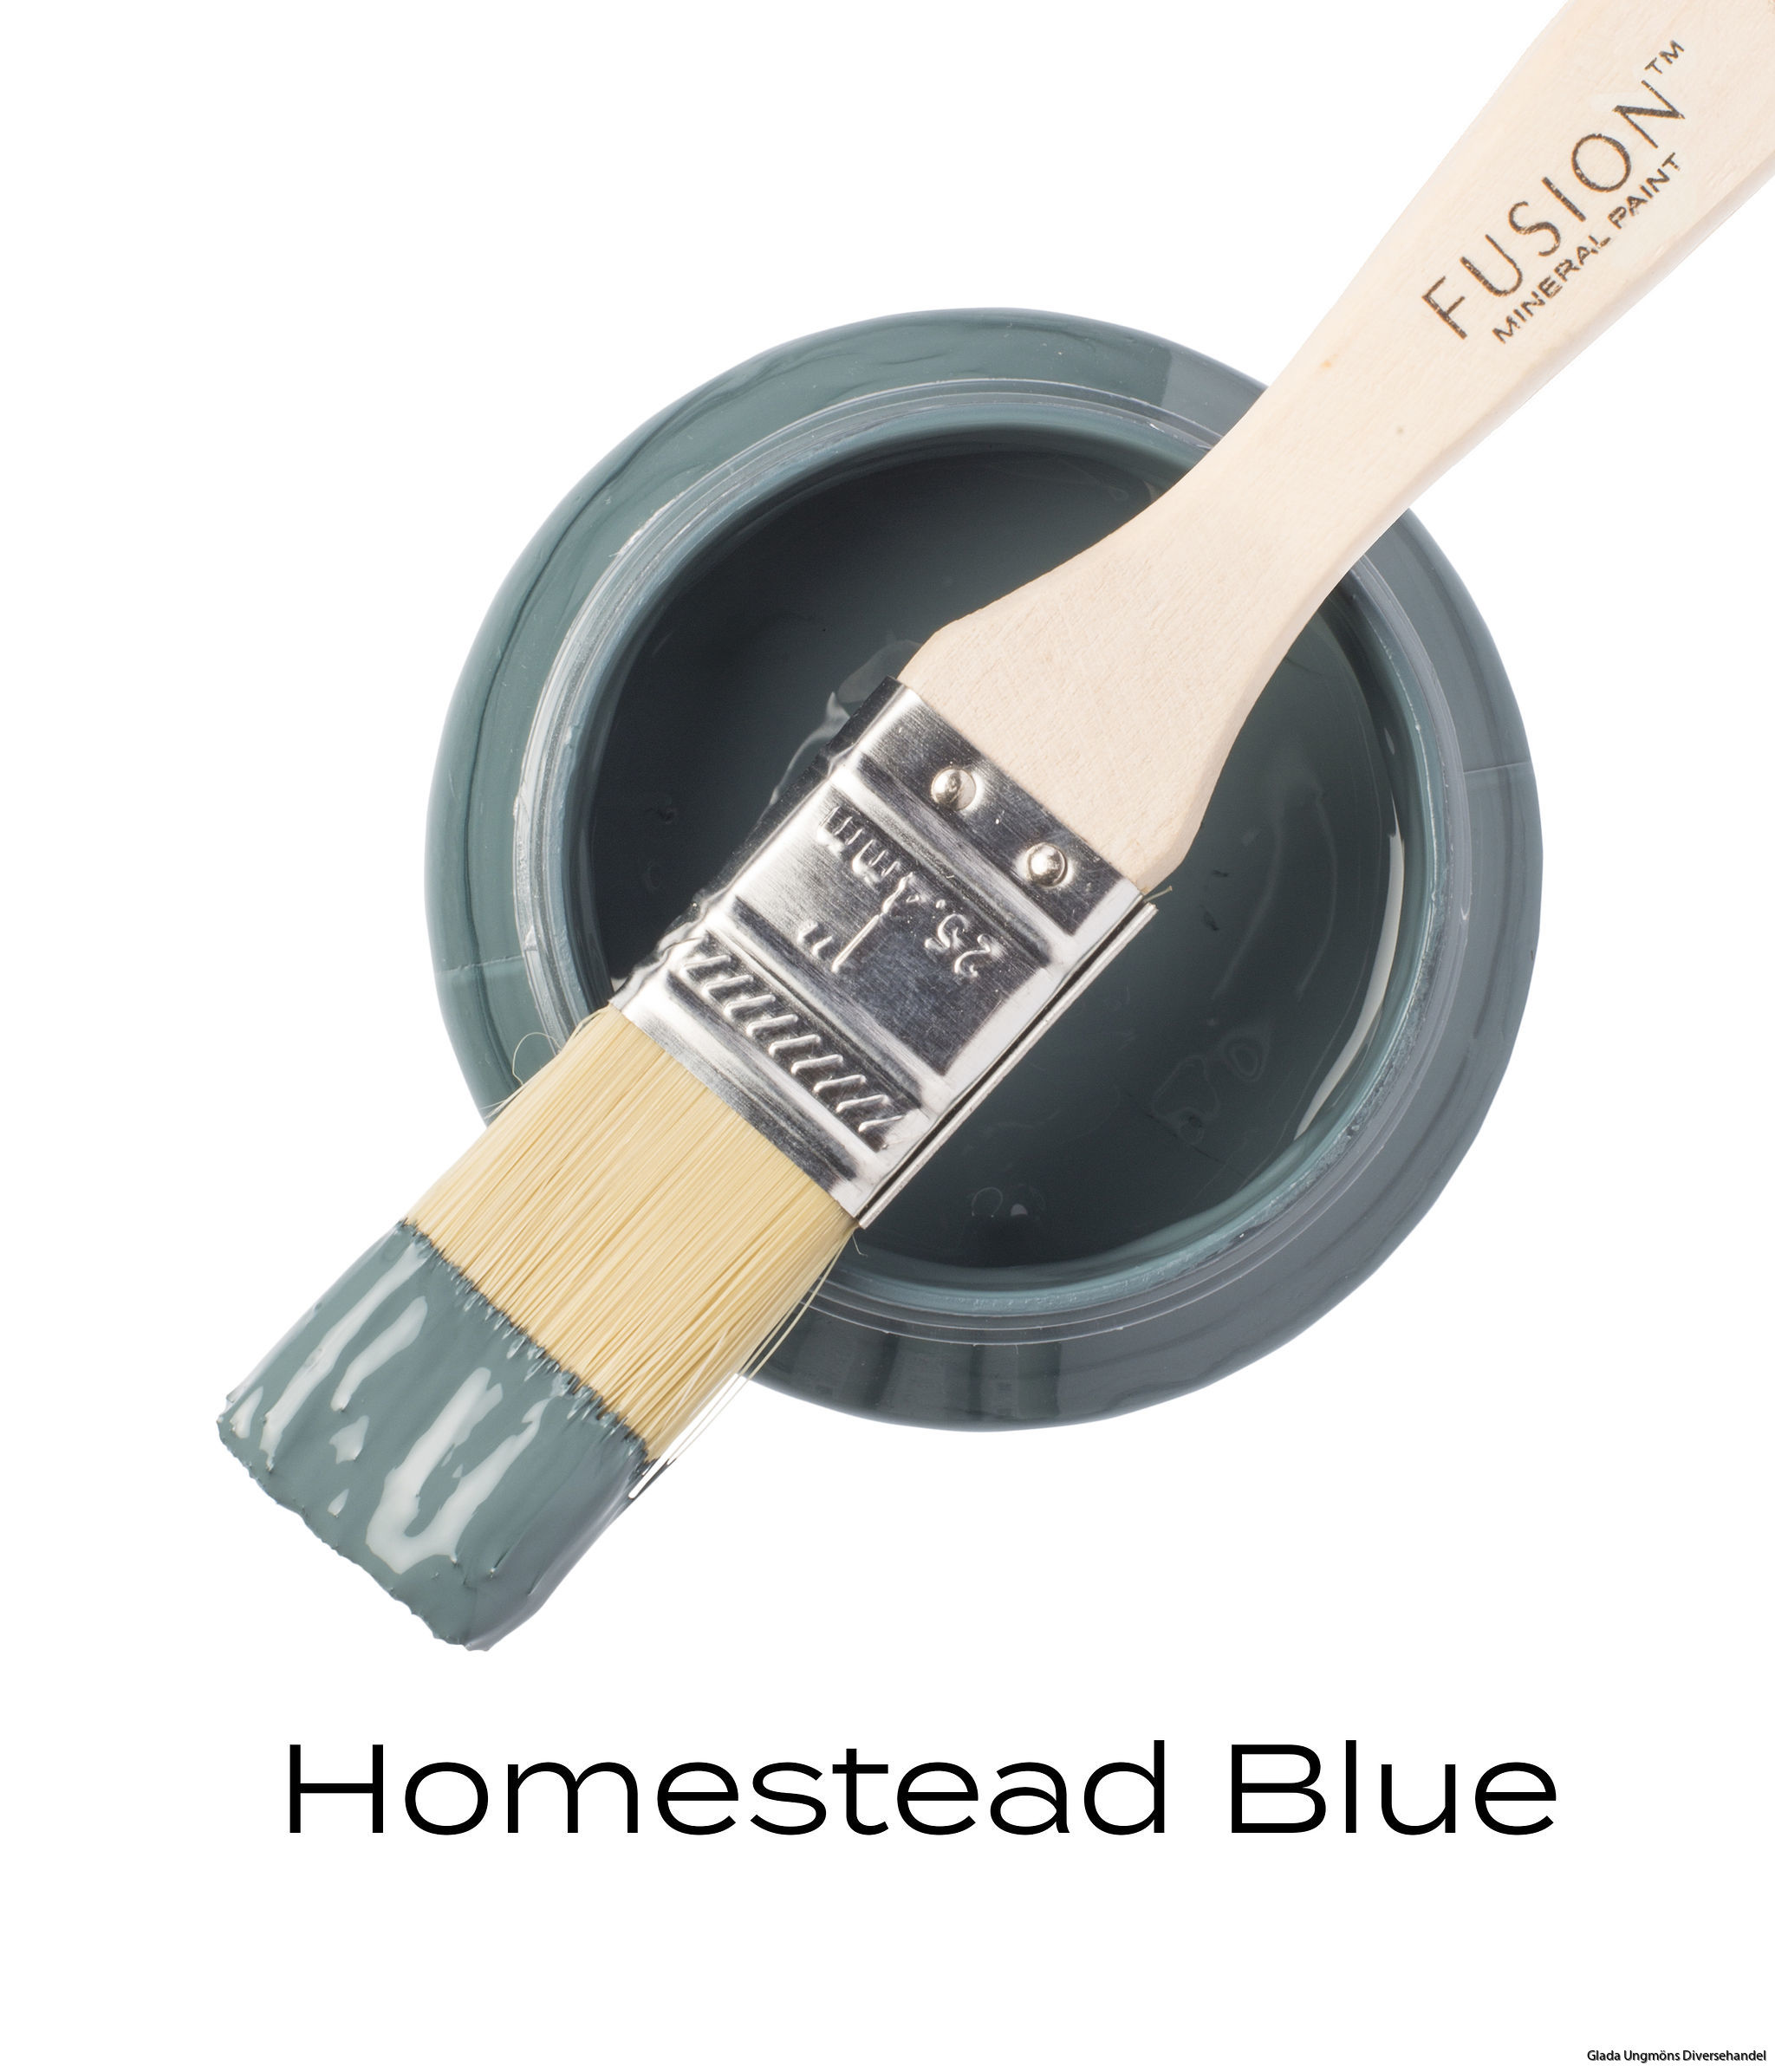 T1HOMESTEADBLUE